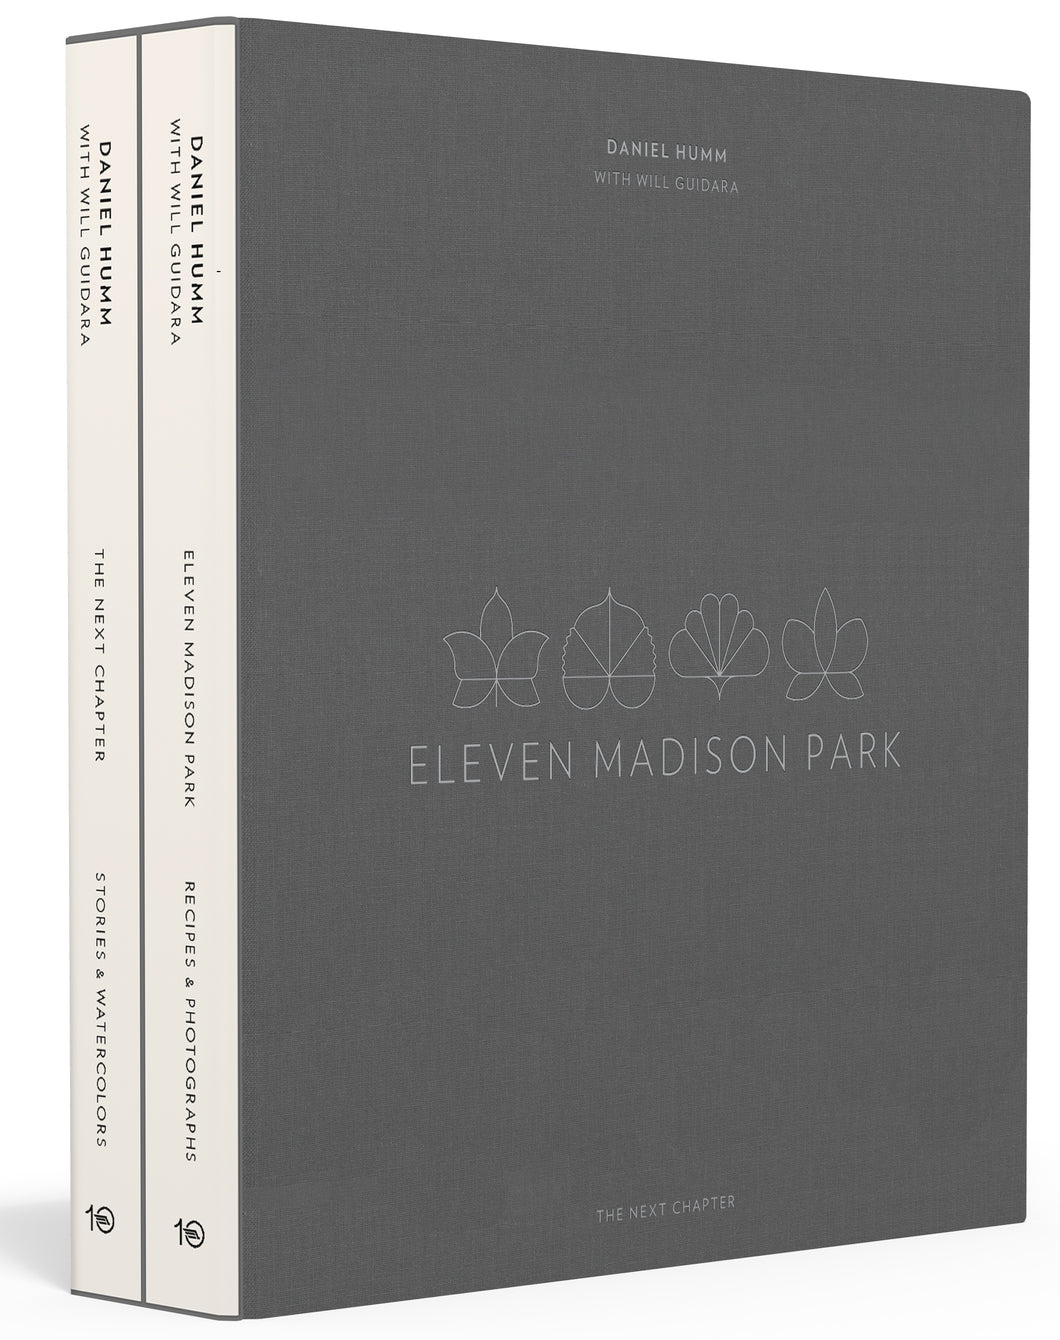 Eleven Madison Park: The Next Chapter (SHIPPING ONLY)